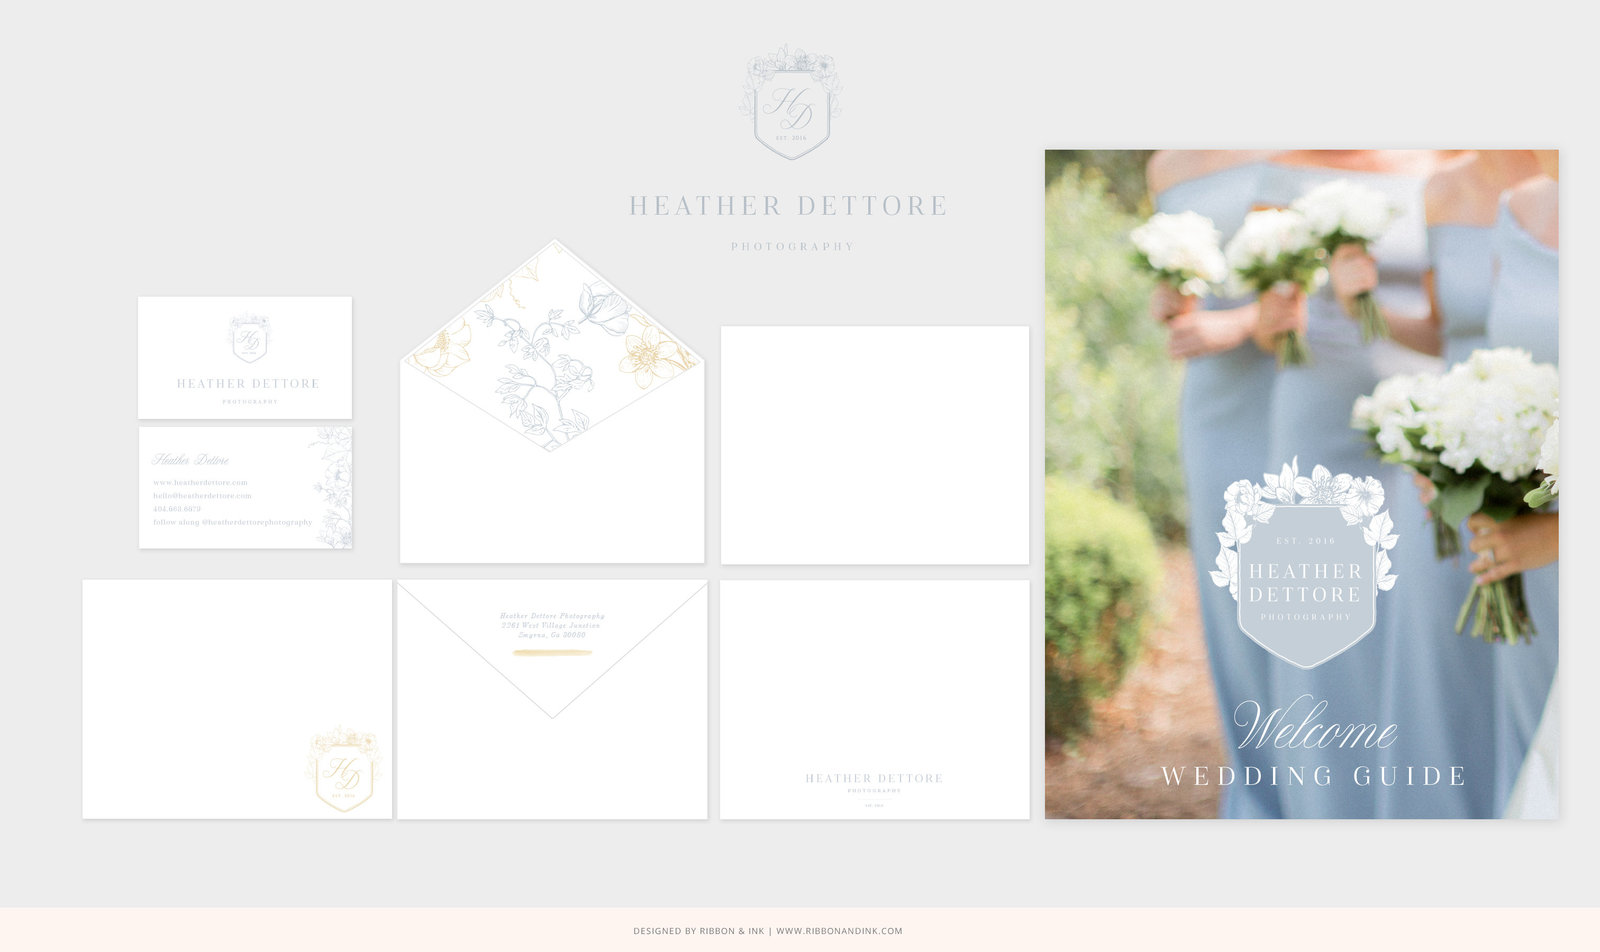 HeatherDettore_Stationery_v01